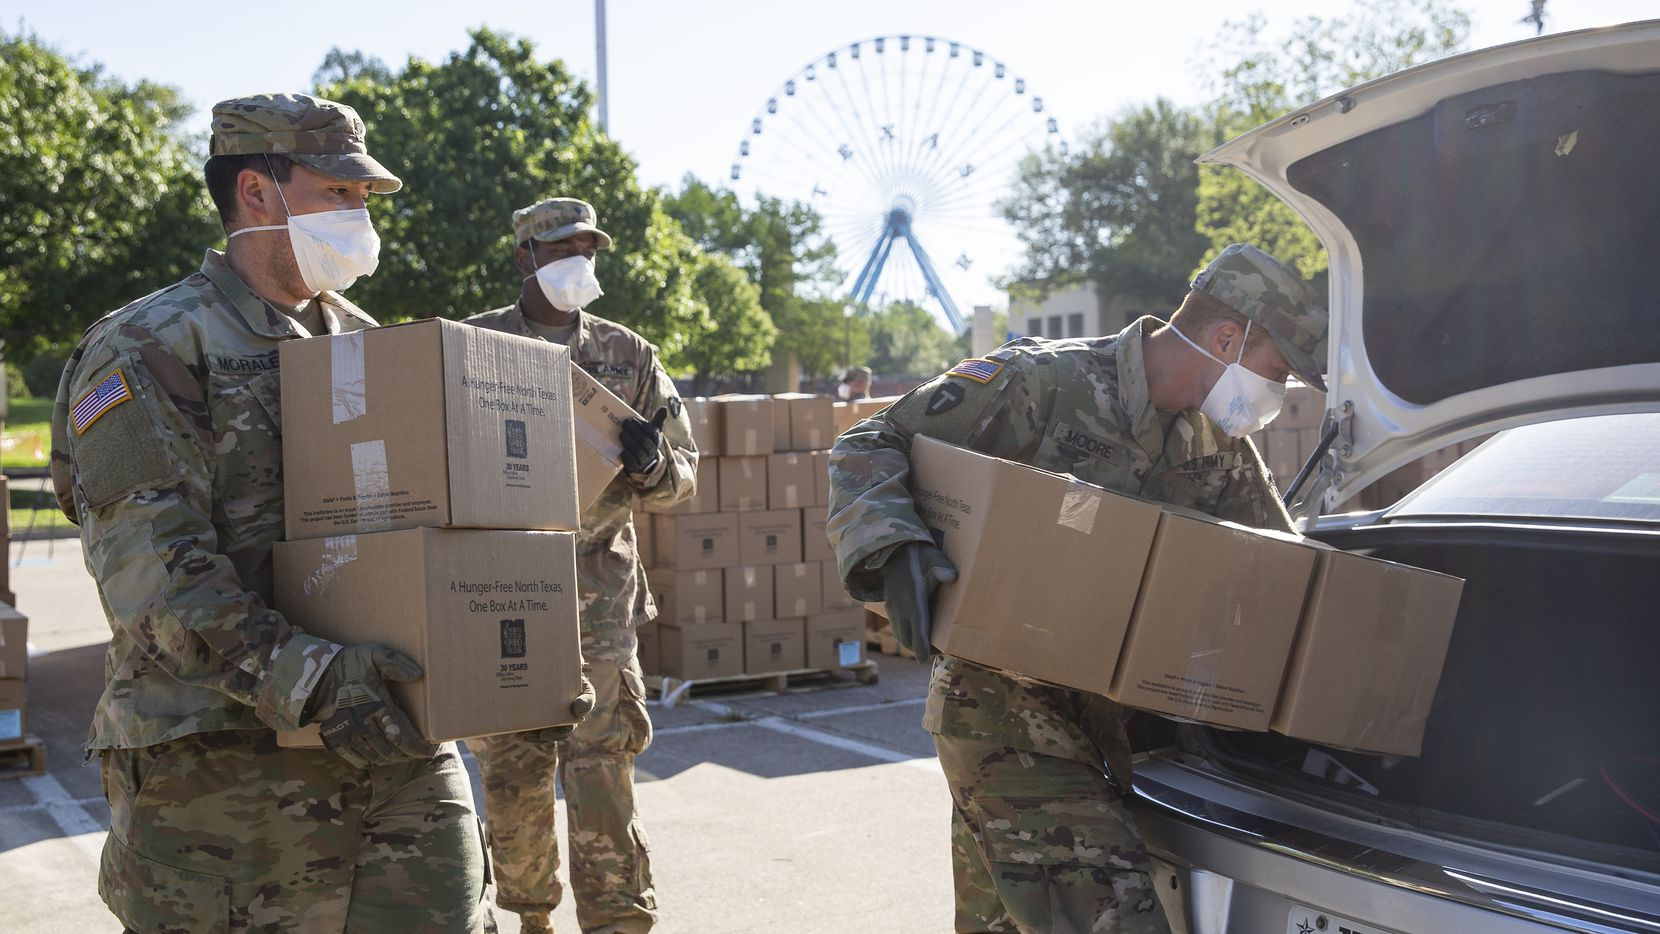 Members of the Texas National Guard help the North Texas Food Bank to distribute free food at Fair Park on April 16, 2020 in Dallas.